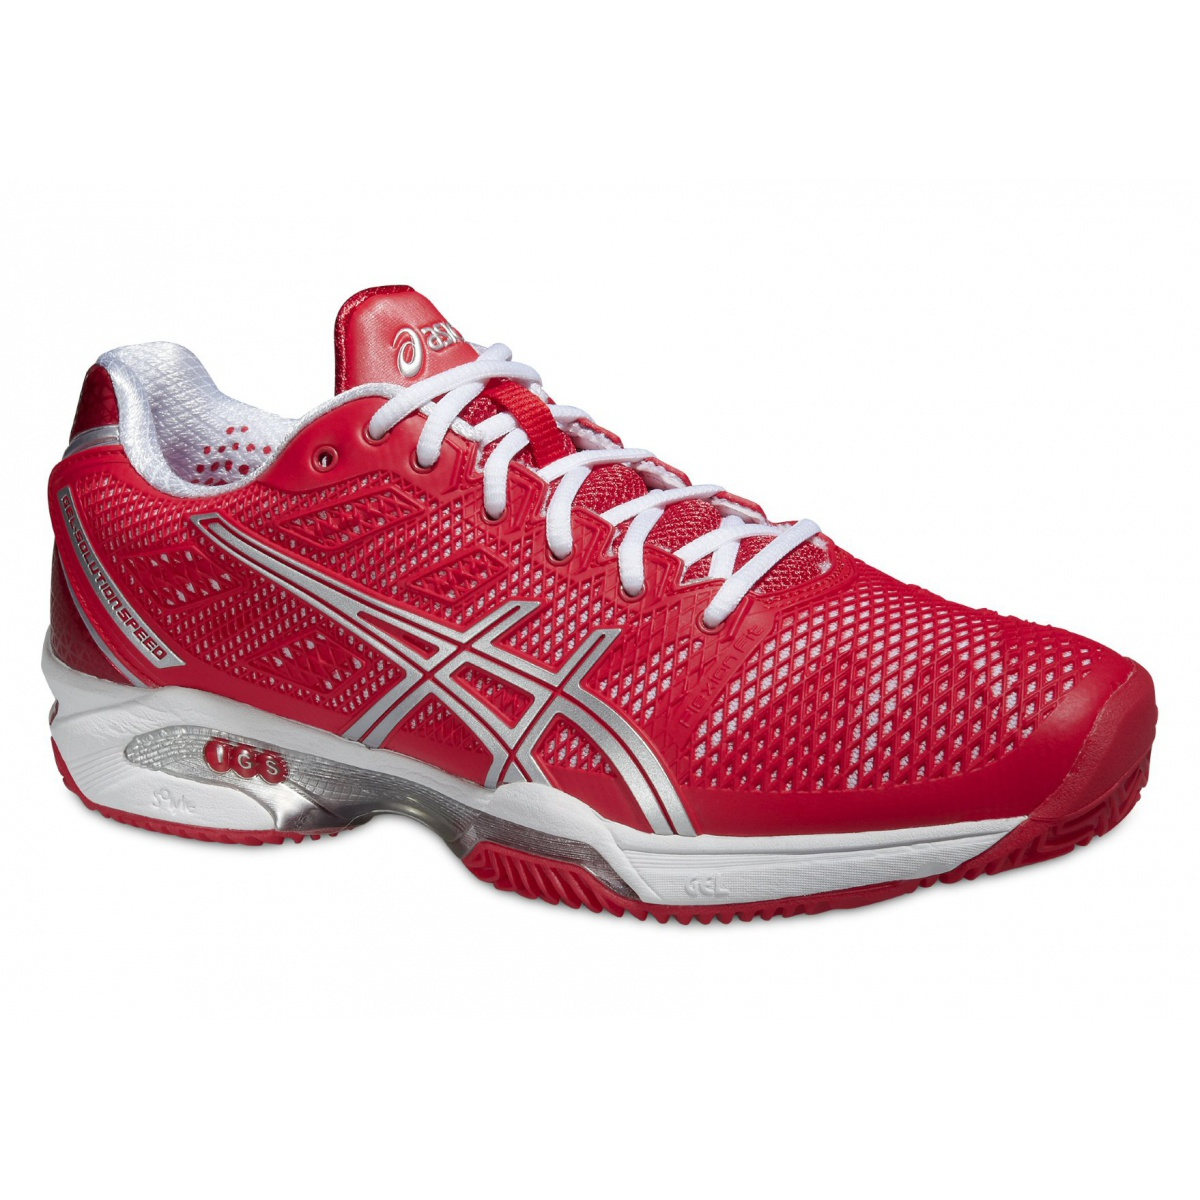 asics gel solution speed 2 clay hibiscus tennisschuhe damen versandkostenfrei online bestellen. Black Bedroom Furniture Sets. Home Design Ideas